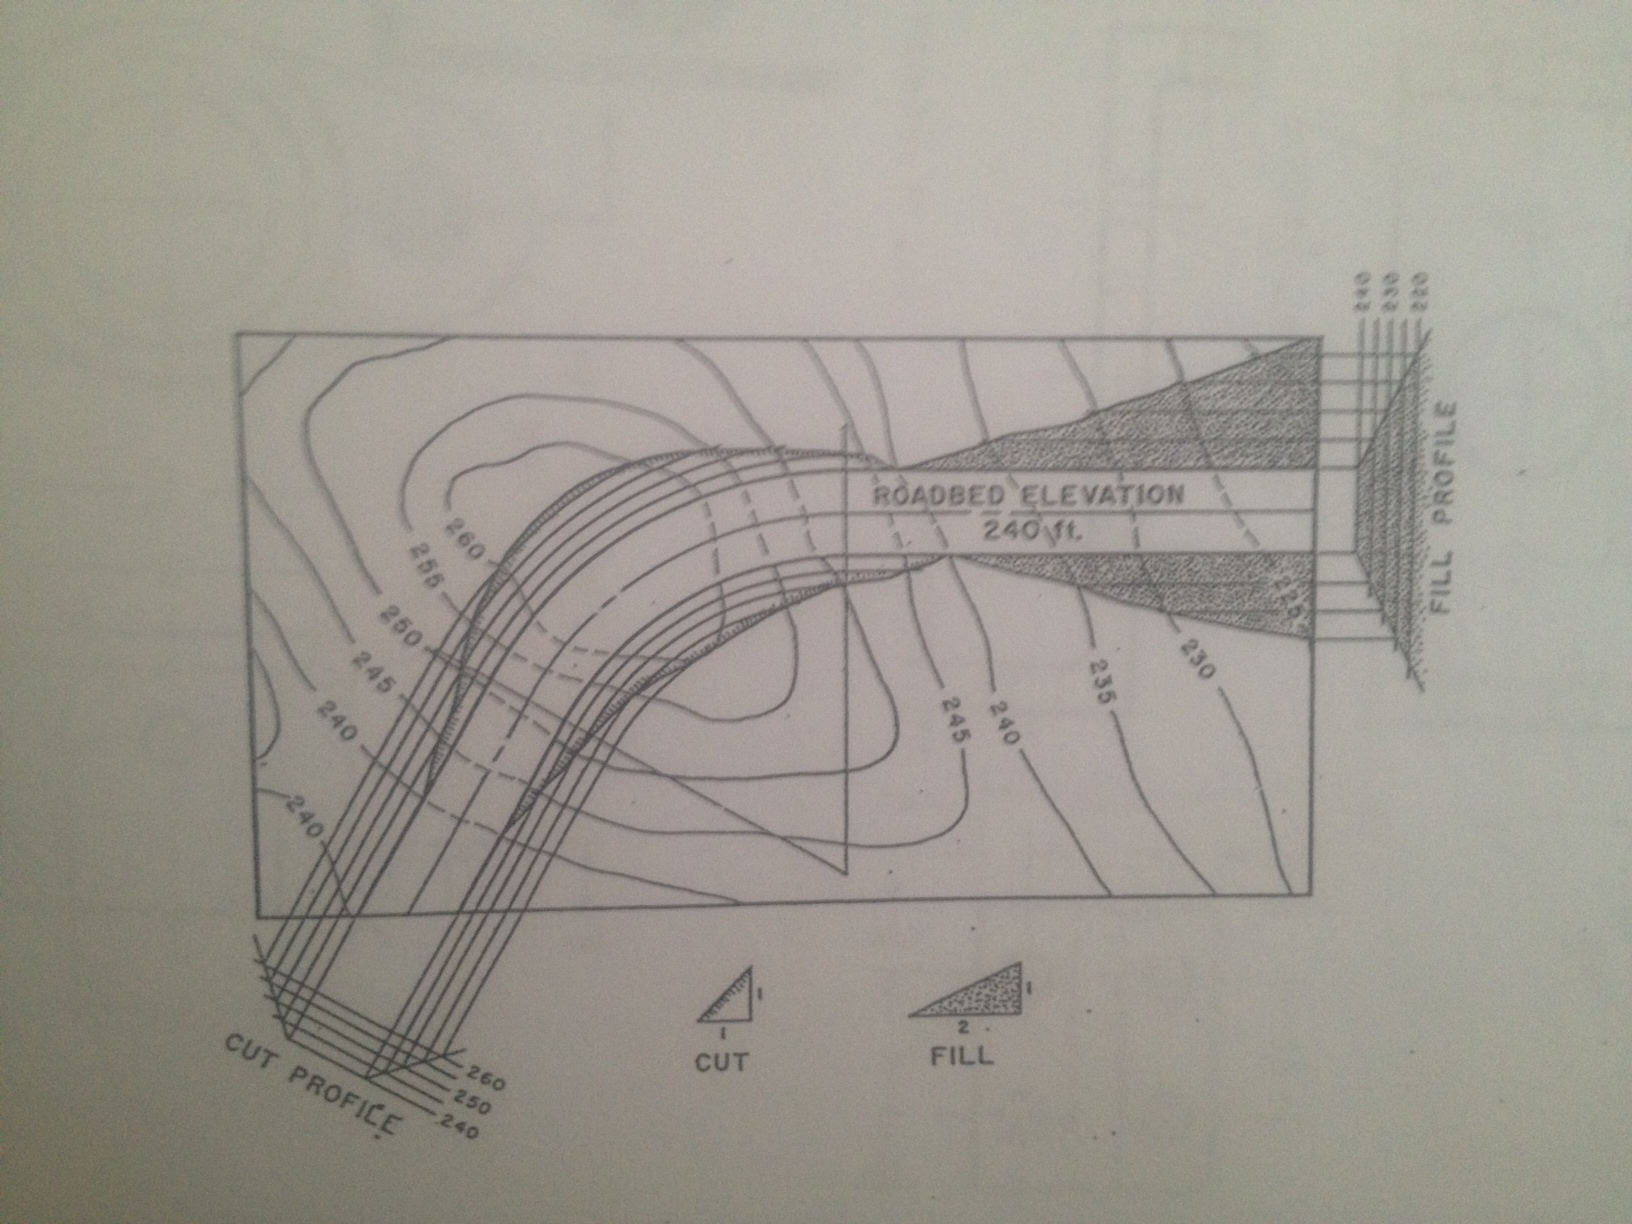 Contour Line Drawing In Autocad : Got stuck with contour interpolation project in autocad autodesk